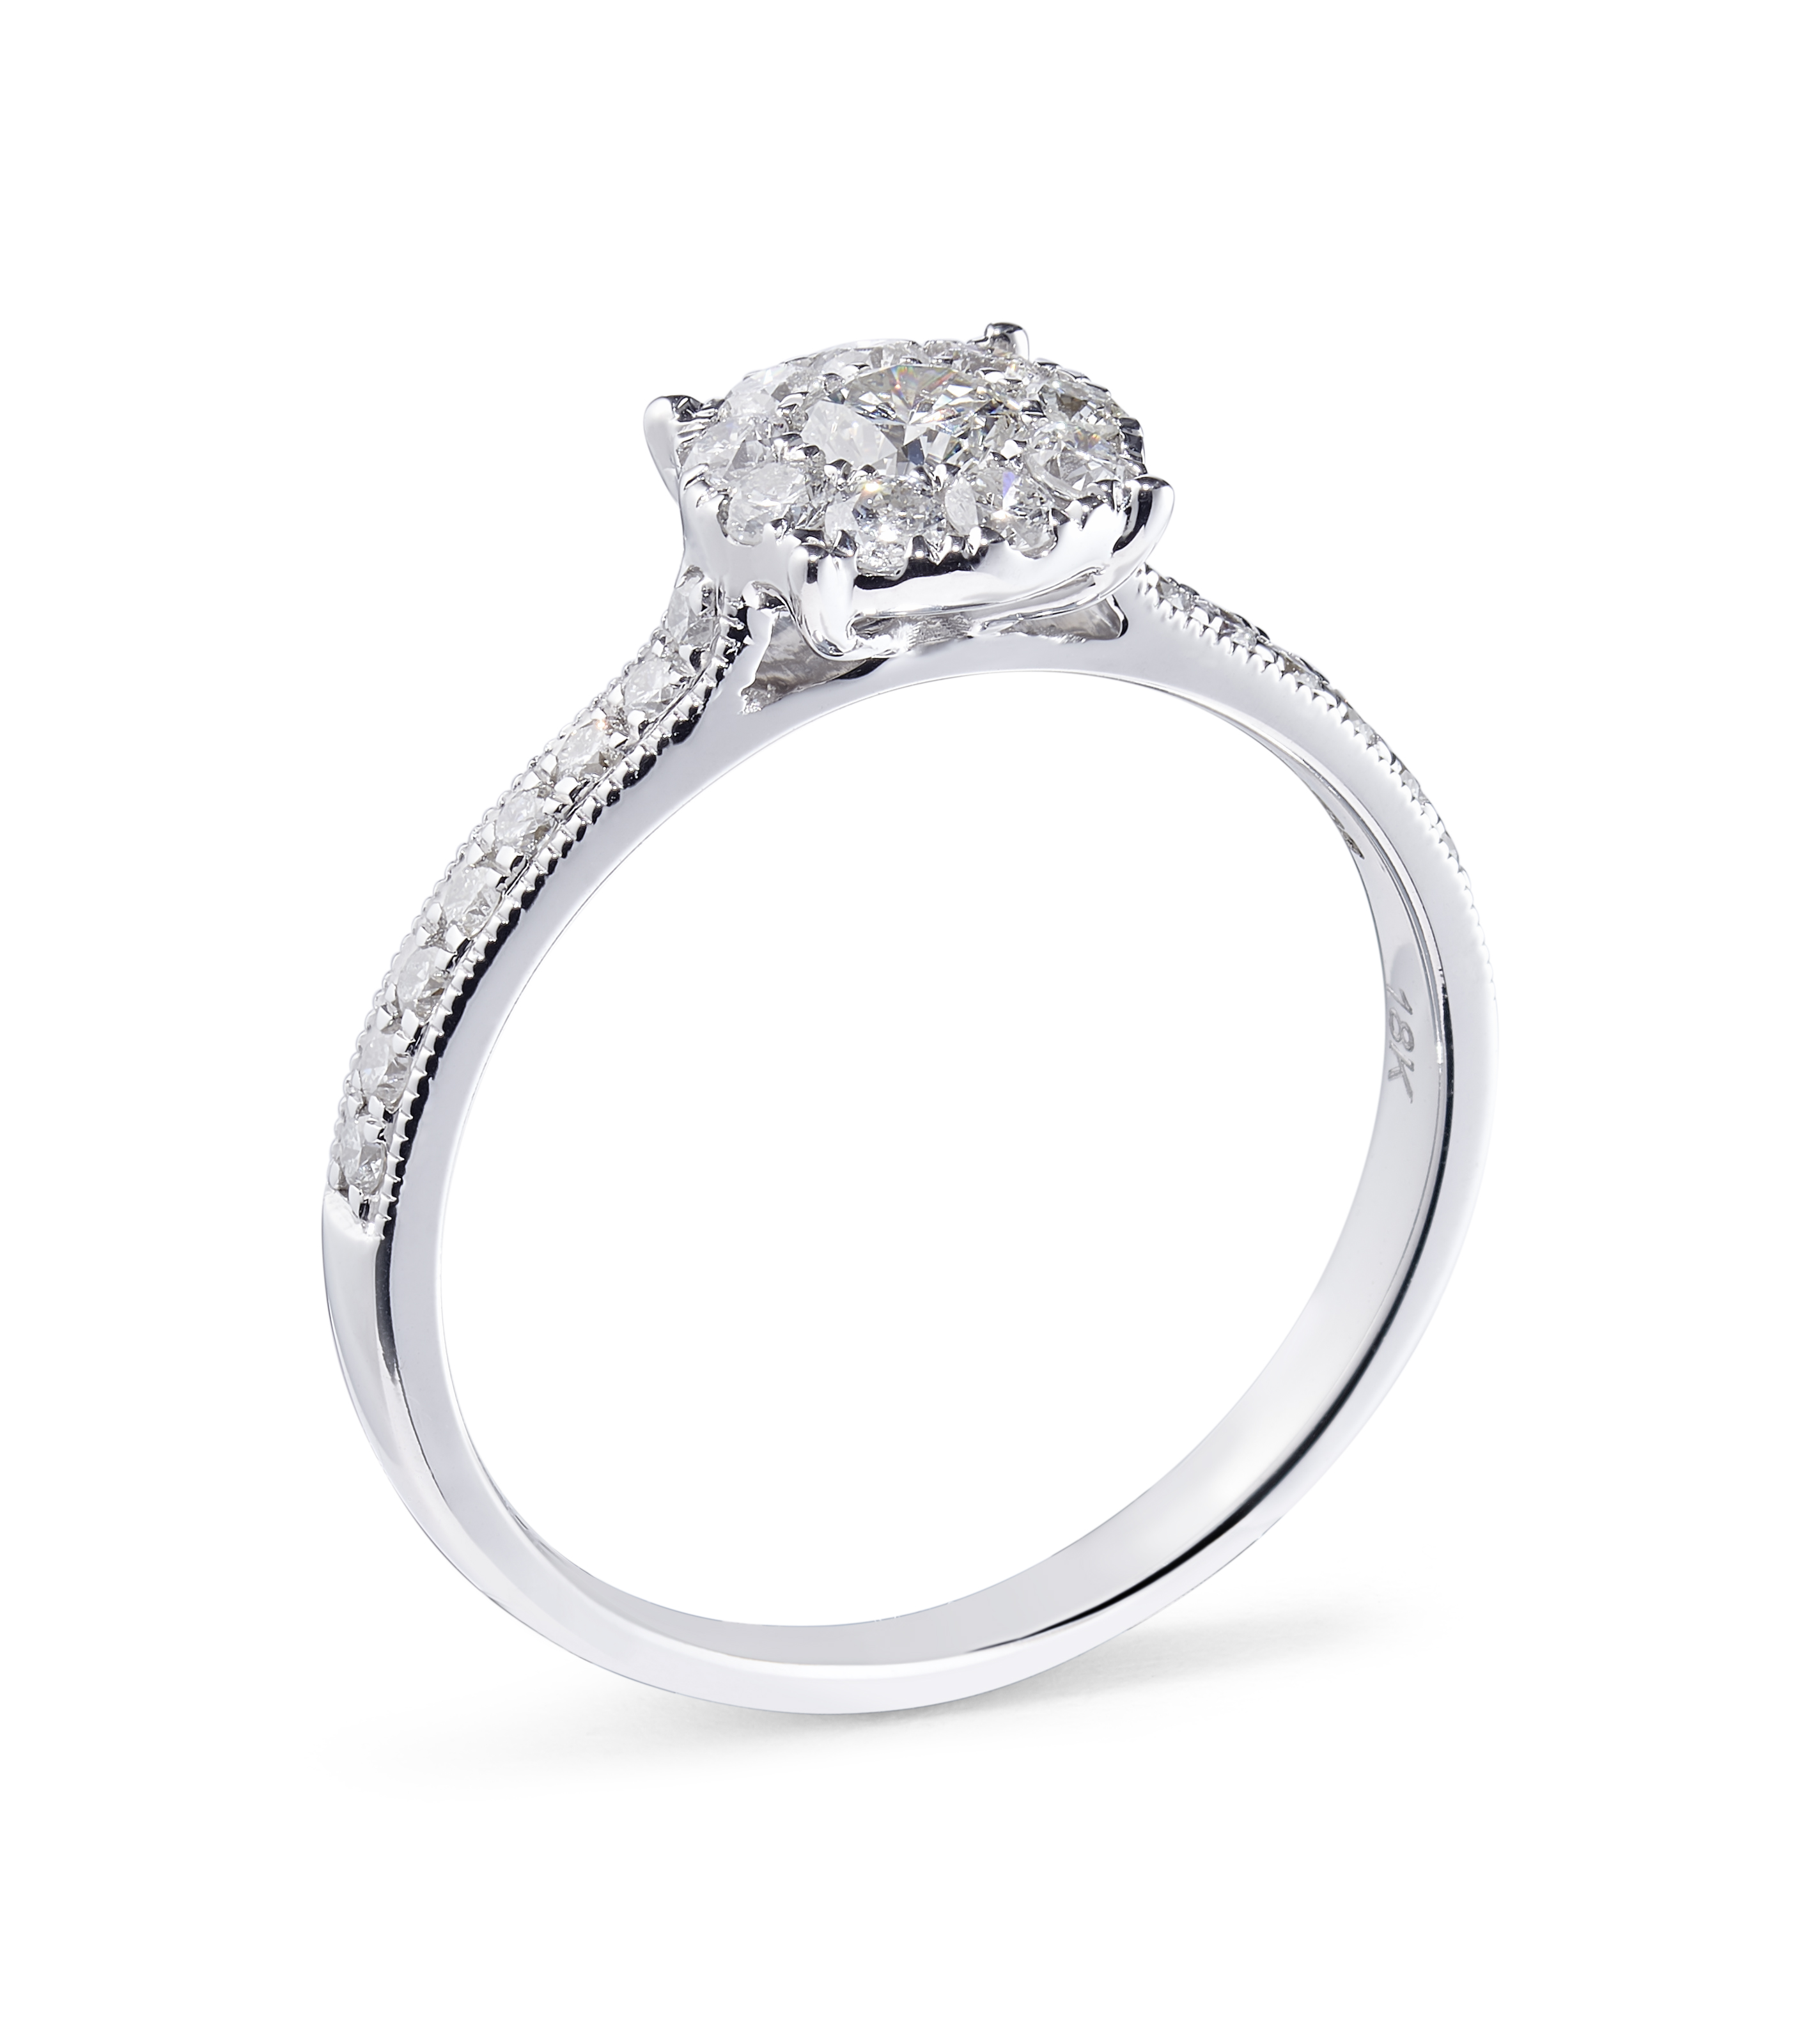 18ct White Gold Diamond Ring with Diamond Shoulders – 0.71ct